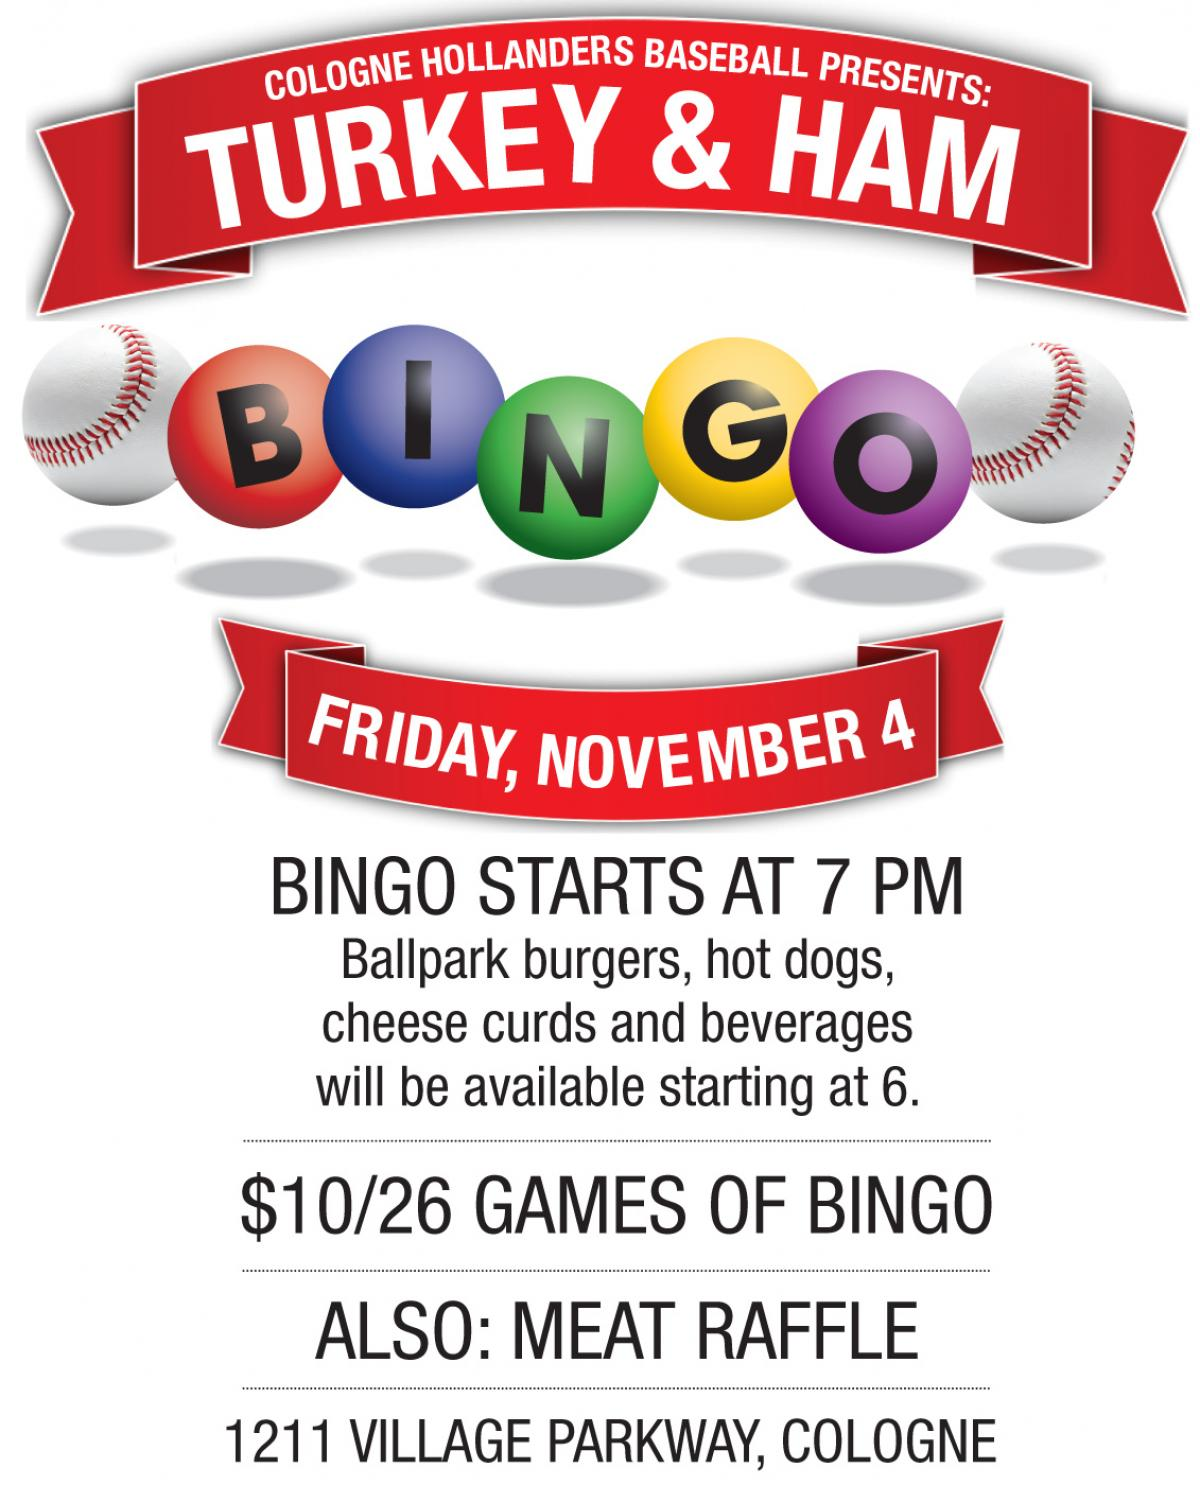 Cologne Hollander Fall Bingo Fundraiser